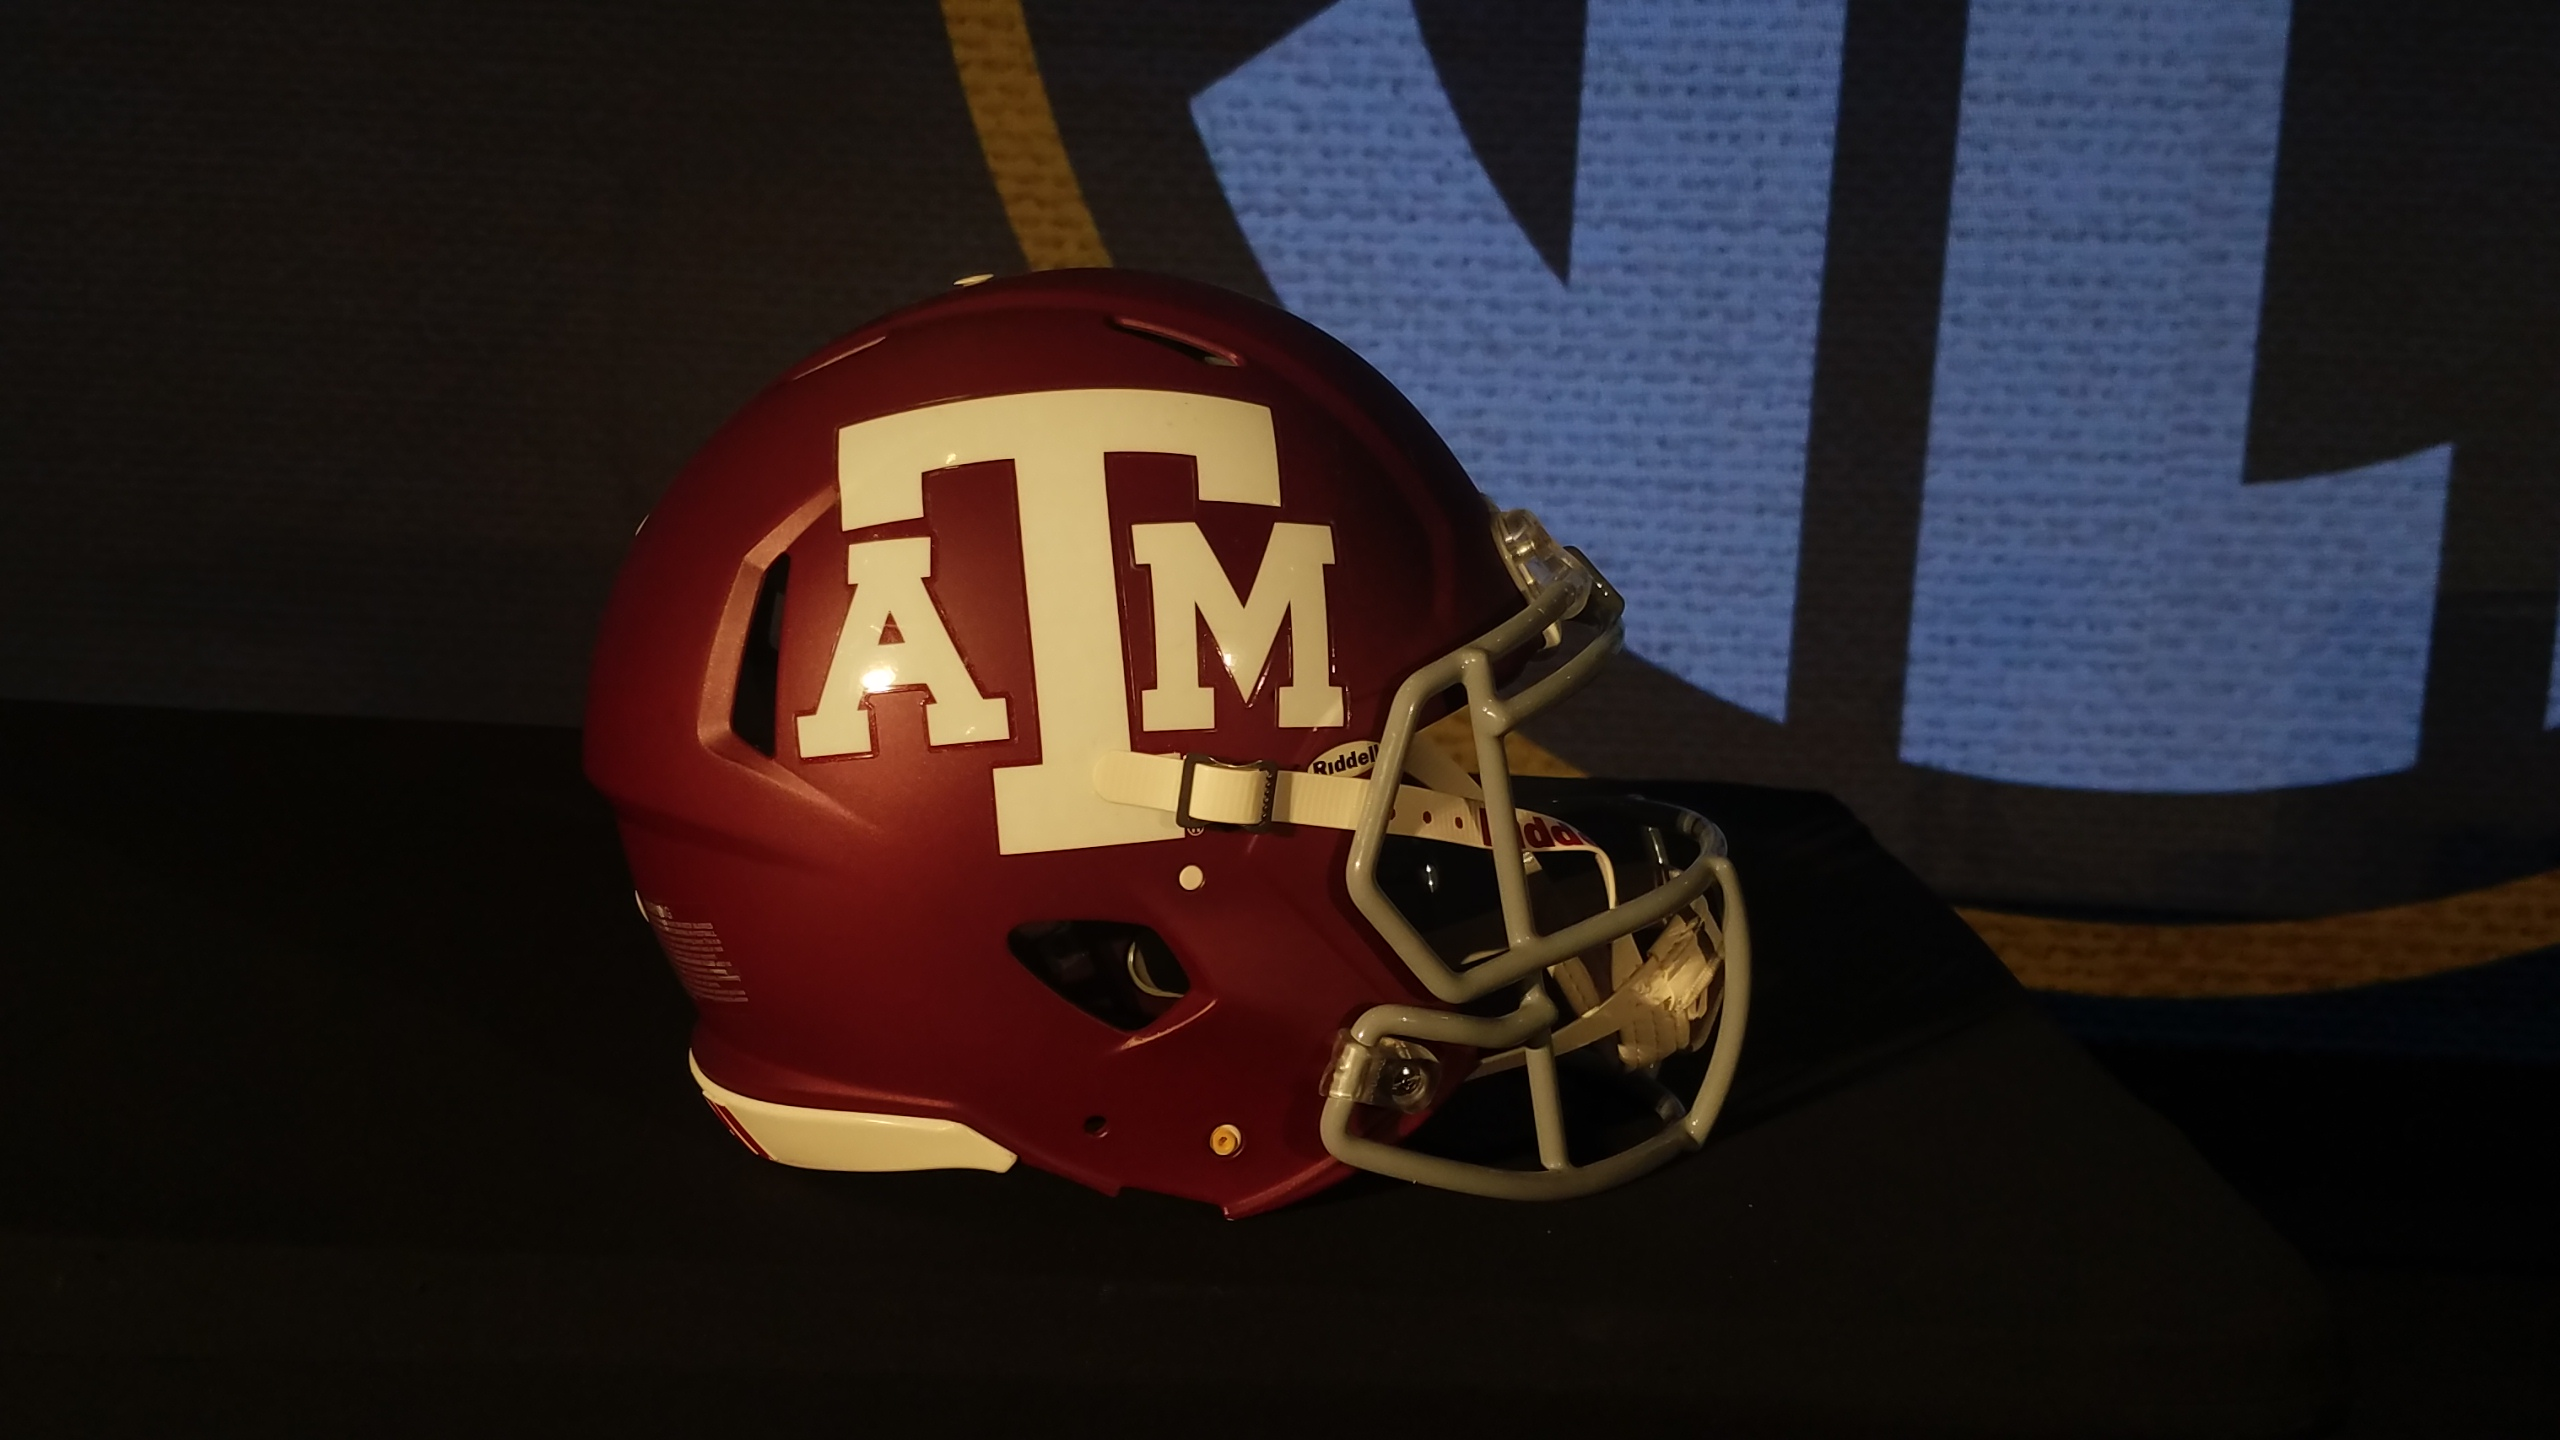 VIDEOS/PODCASTS: Everything from Texas A&M at #SECMD21